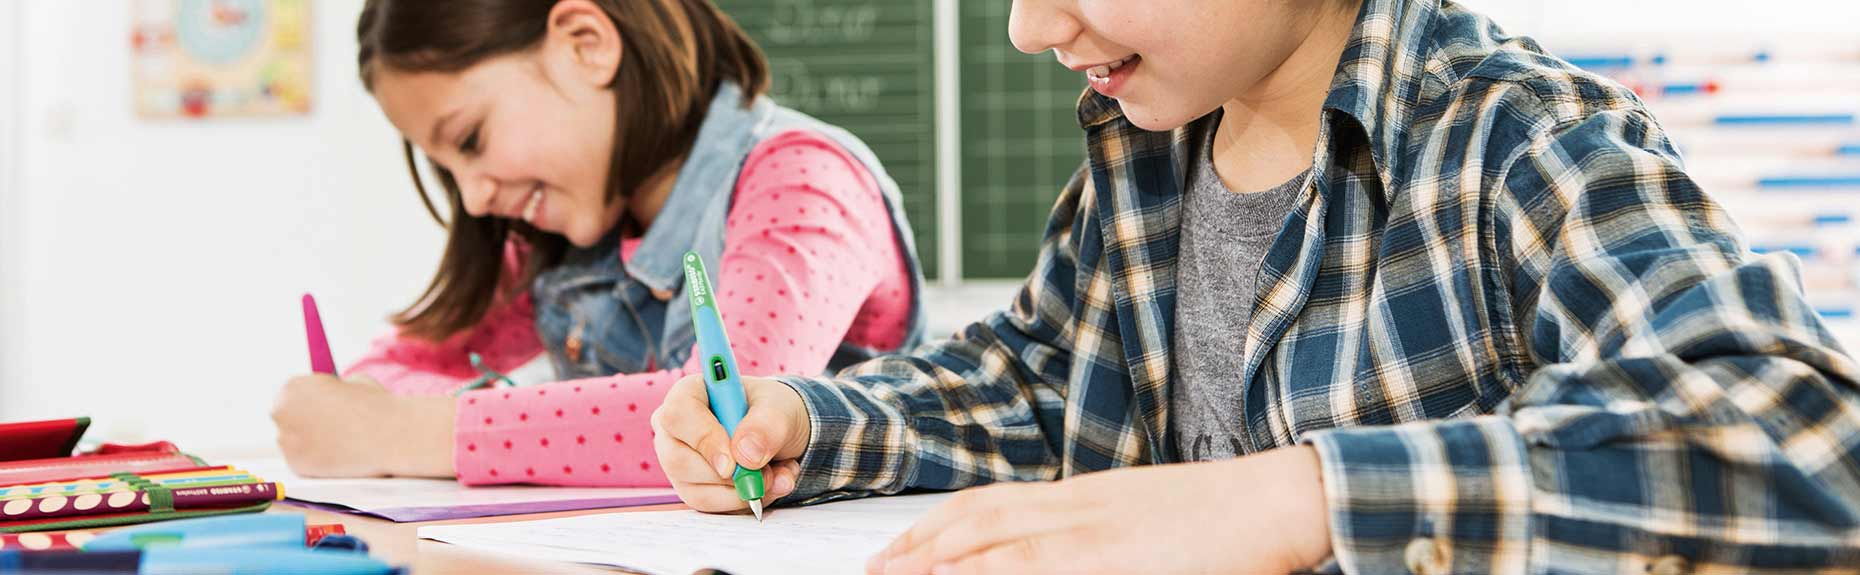 Article_fournitures_scolaires_05-2019_1860x575.jpg